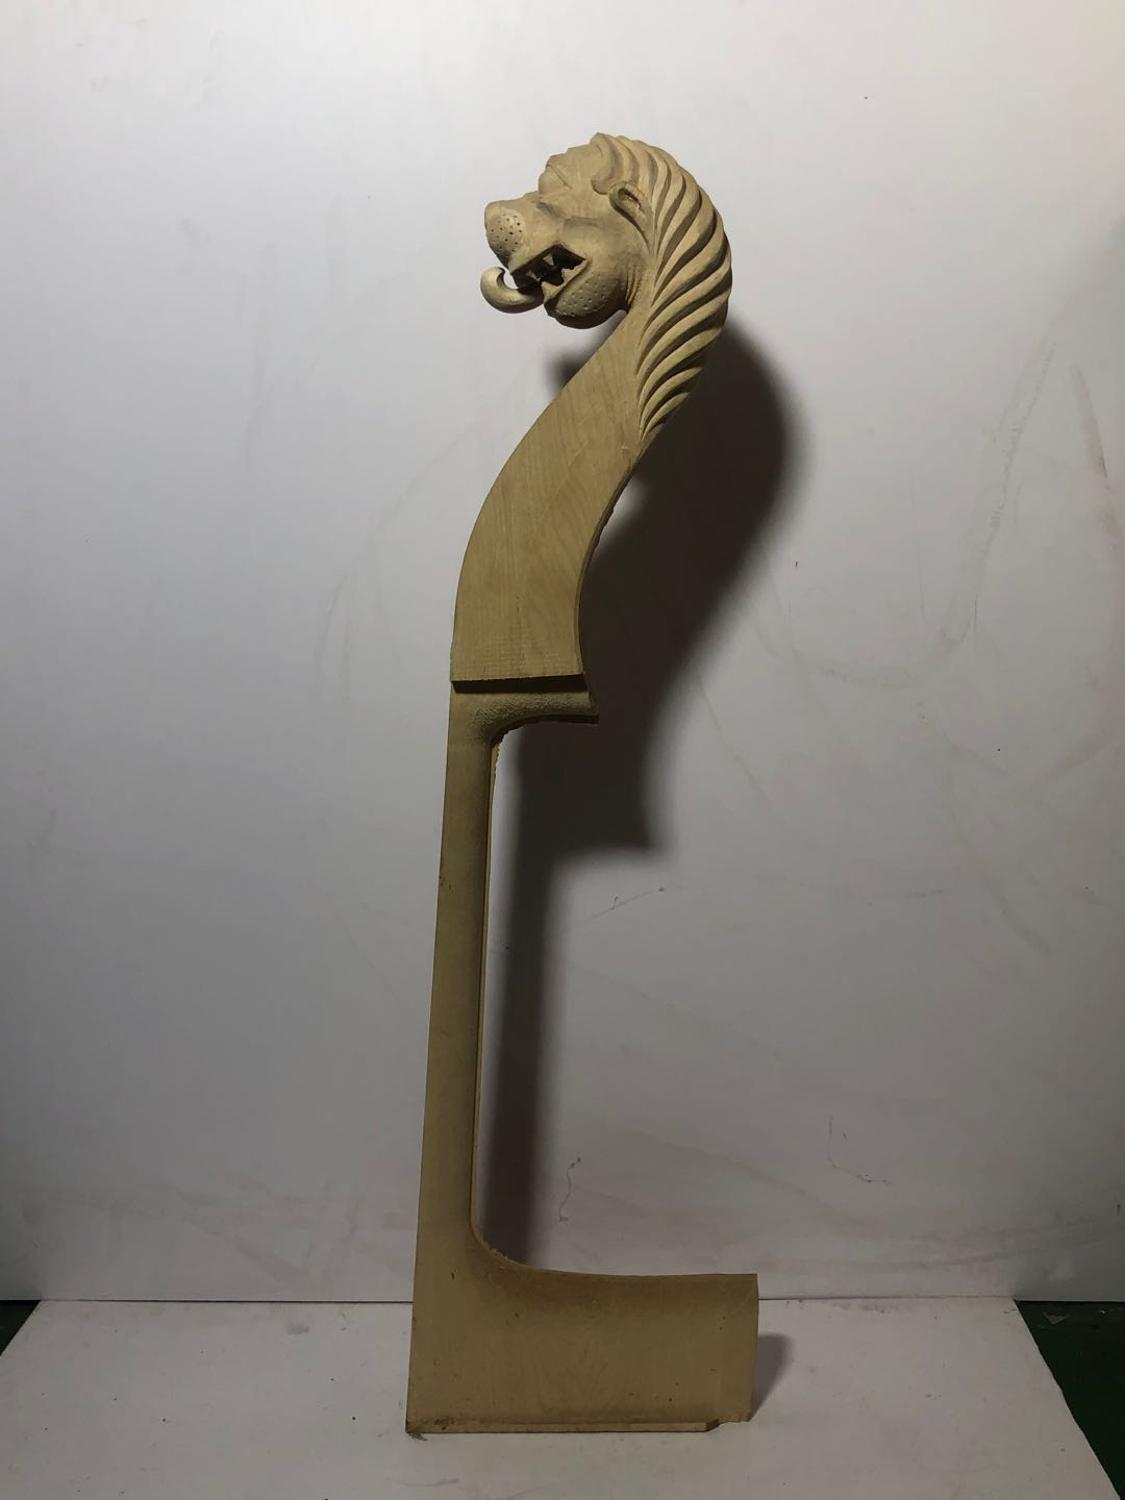 4/4 3/4bass lion cello head Maple material hand carvedSemi finished products enlarge